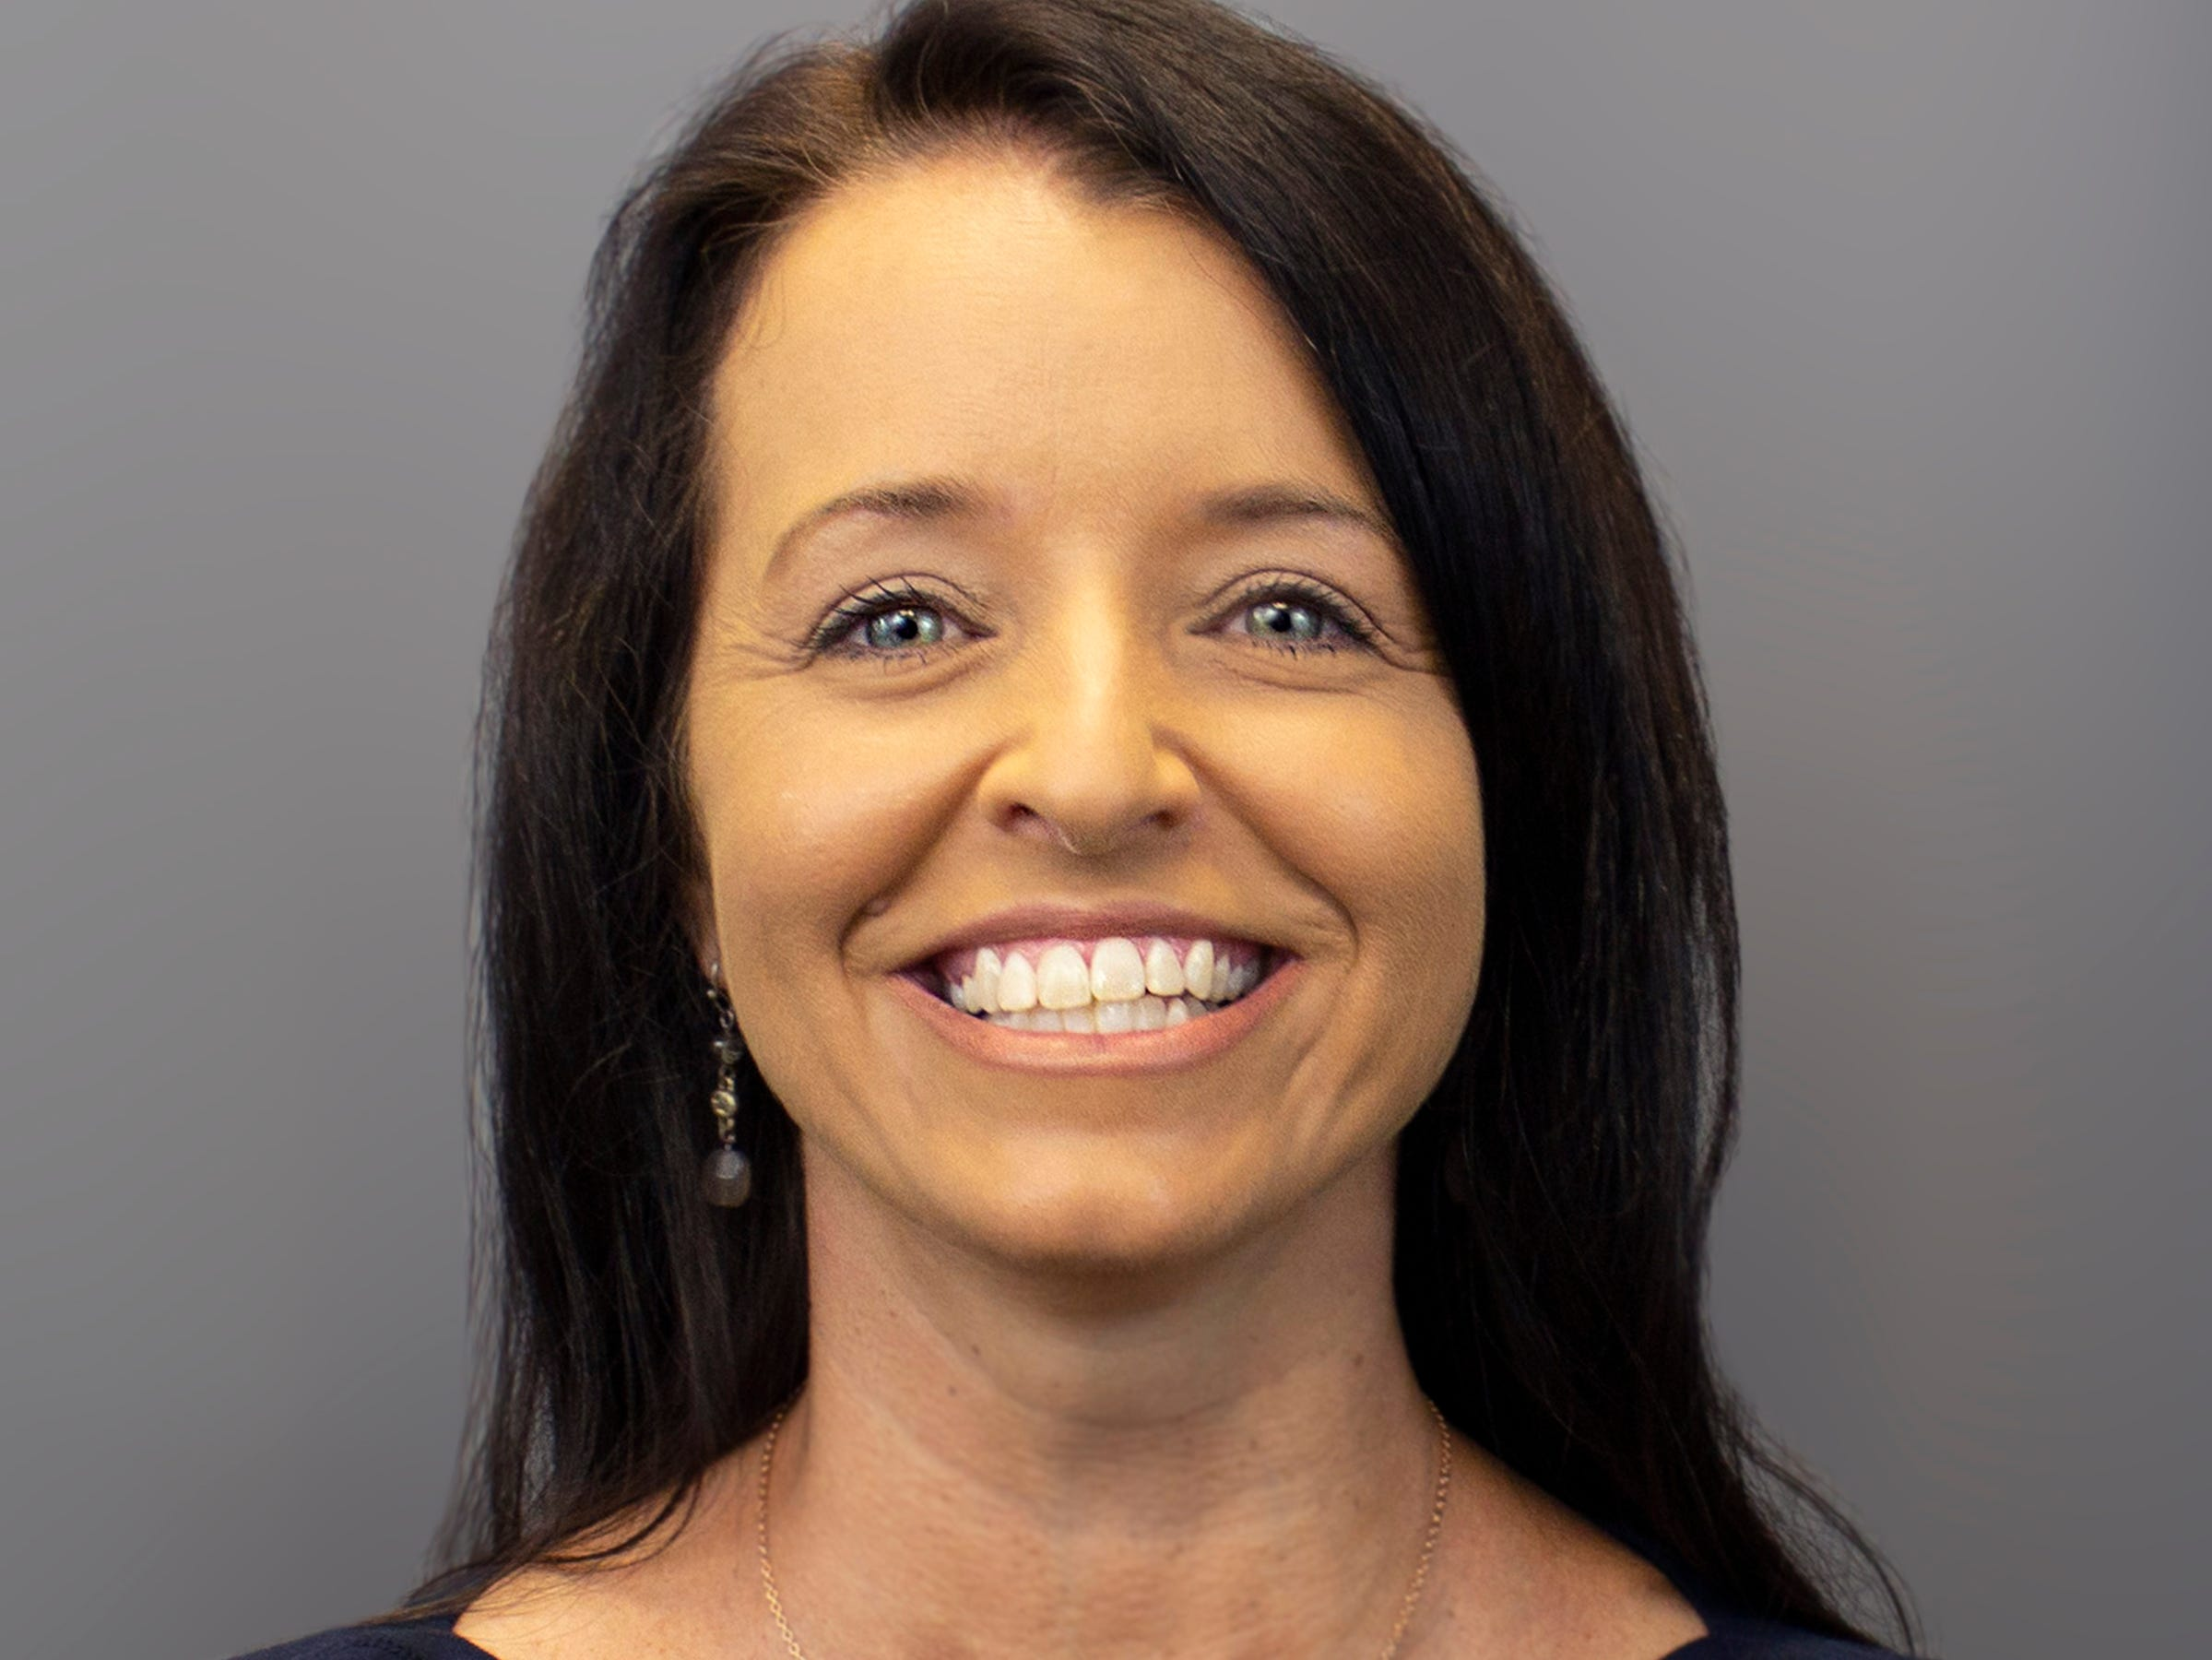 Realty Trust Group, a health care real estate advisory and services firm serving health systems and physician groups, hired Lori Royston as administrative assistant.